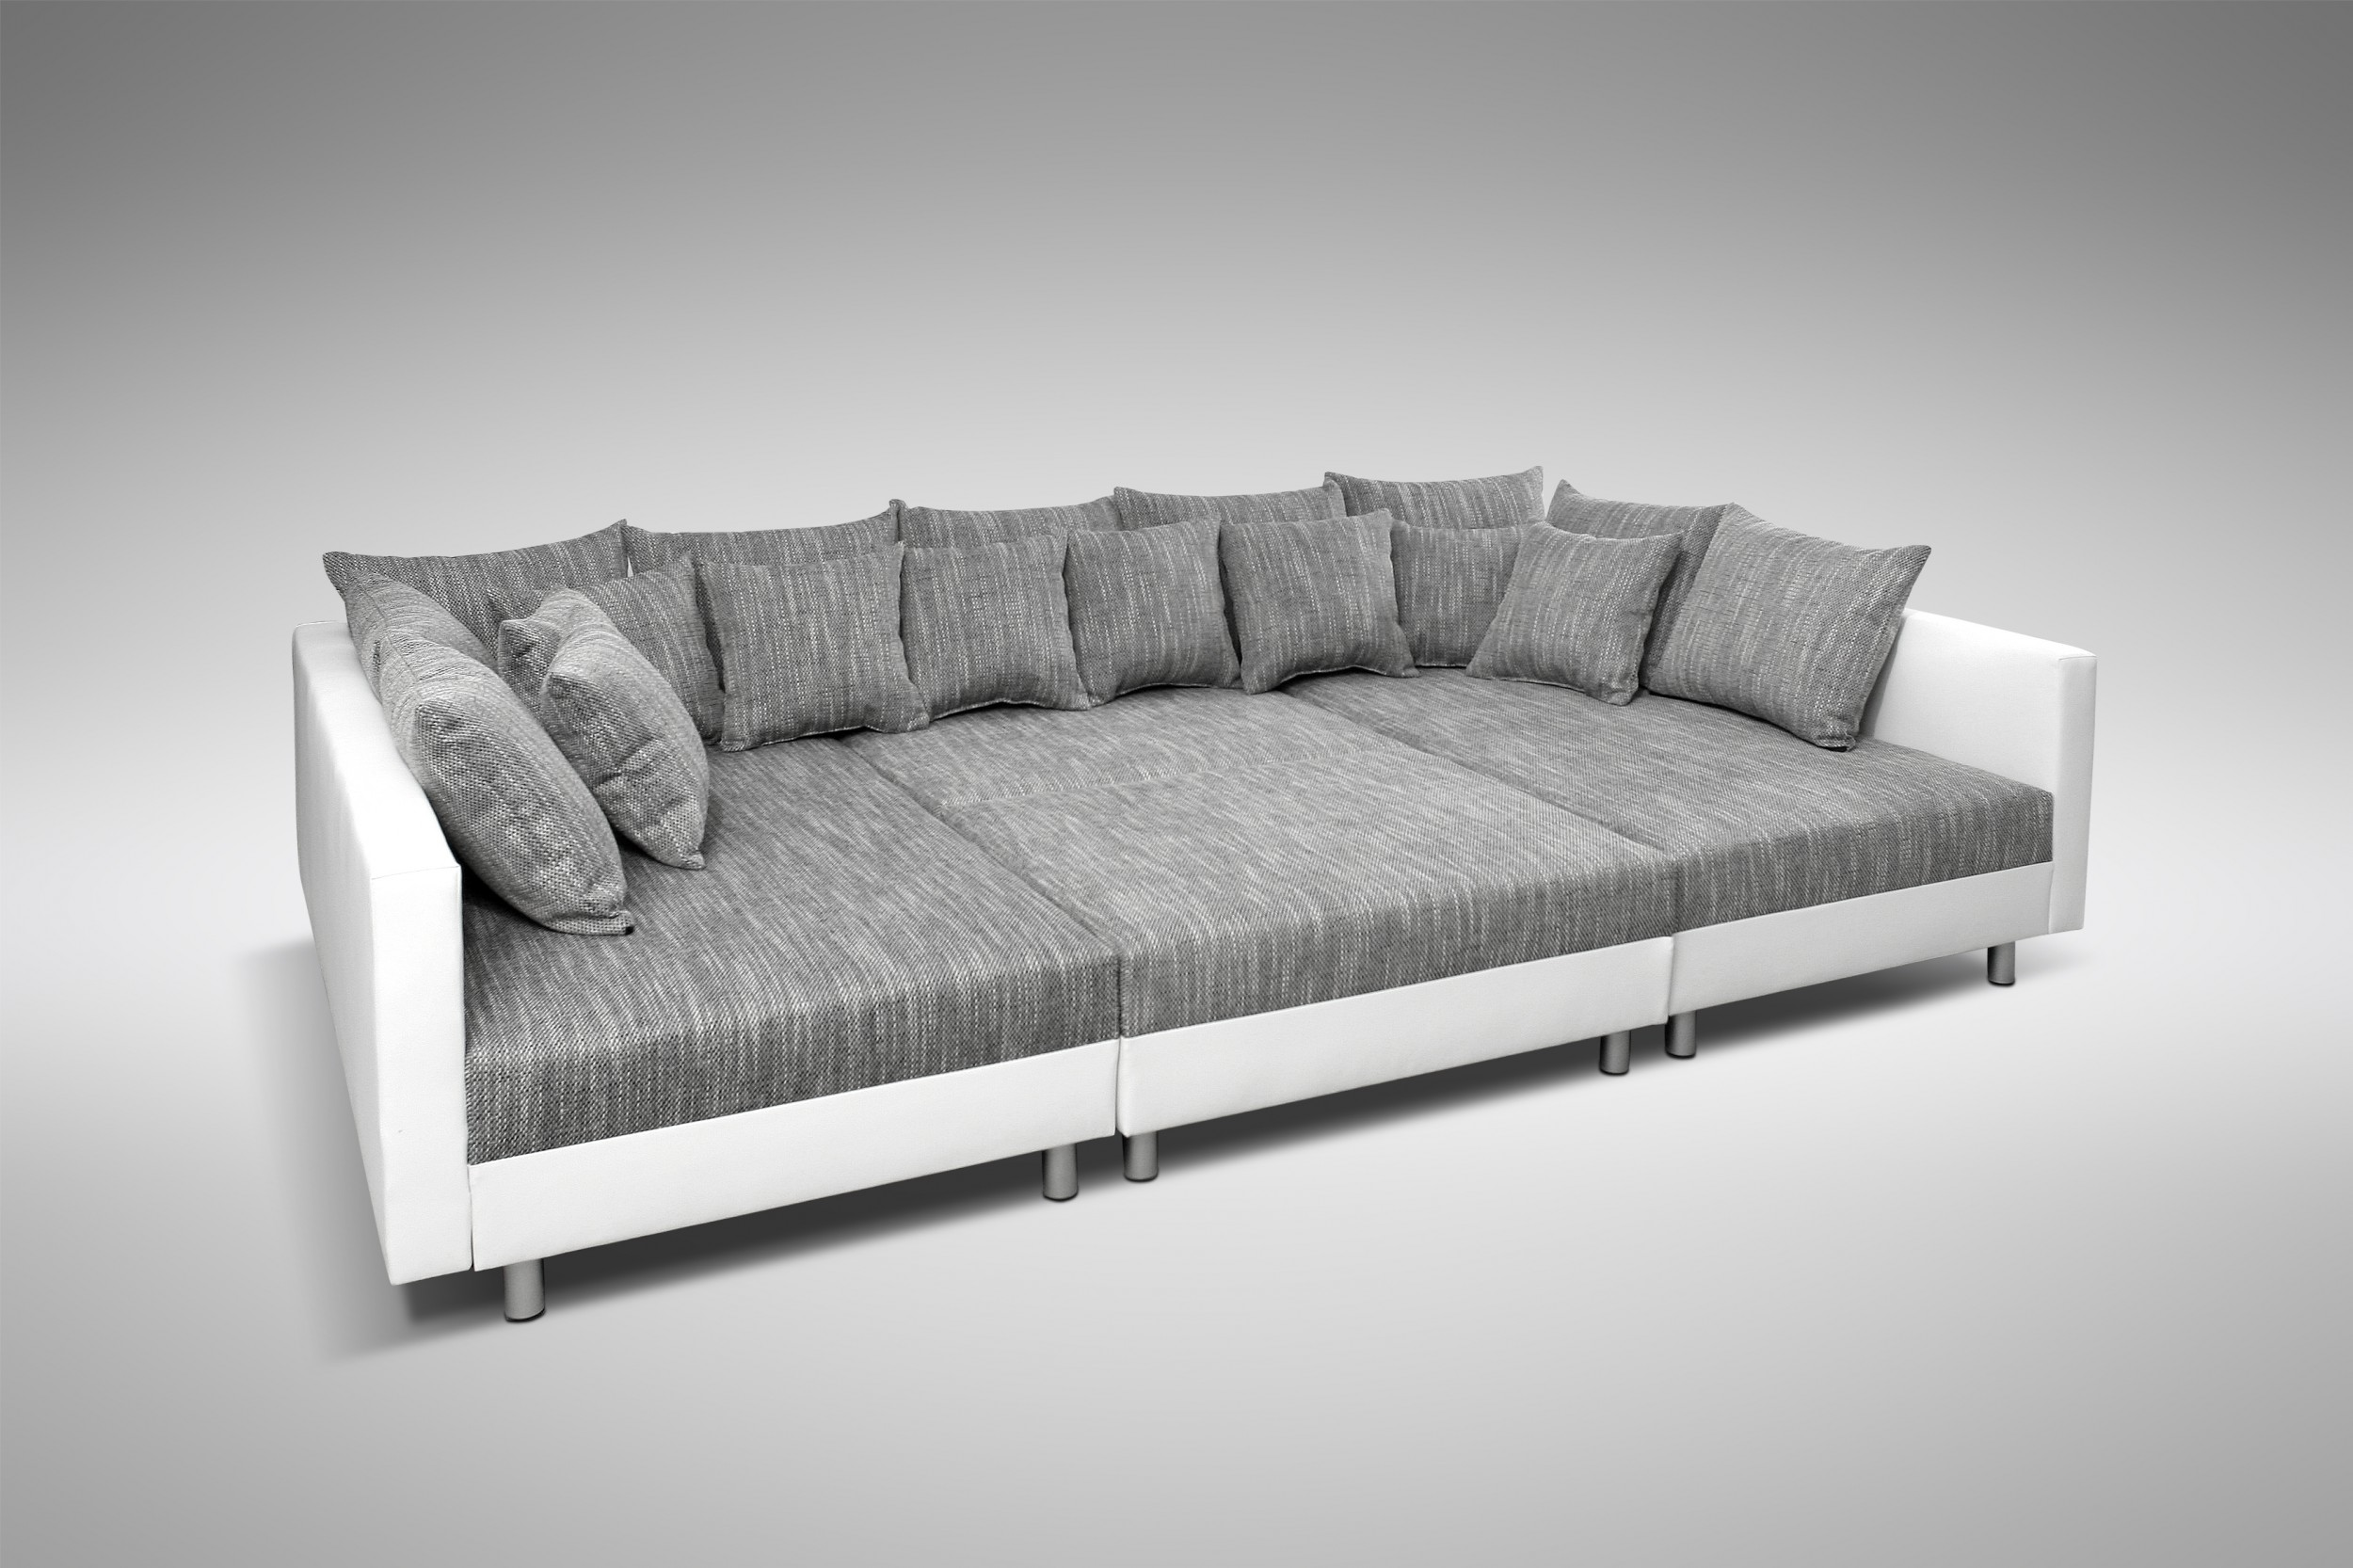 sofa couch ecksofa eckcouch in weiss hellgrau eckcouch mit hocker minsk xxl ebay. Black Bedroom Furniture Sets. Home Design Ideas